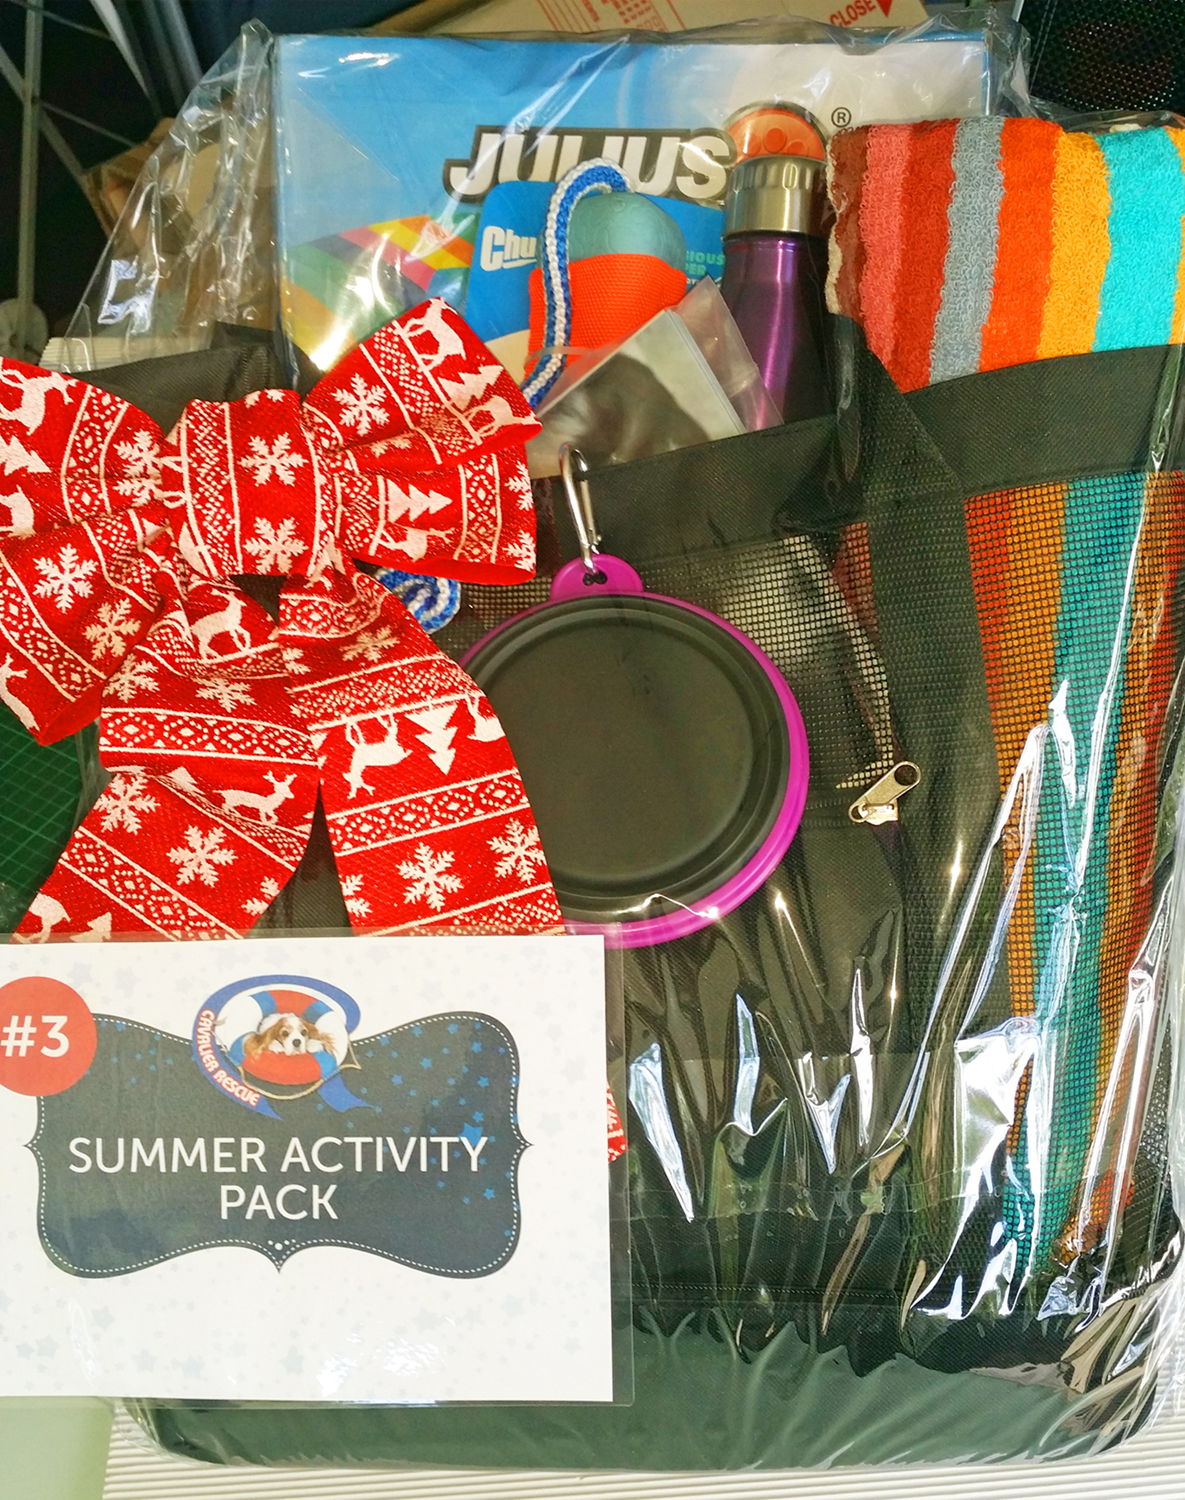 Cavalier Rescue Qld - Christmas Raffle 2016 - Summer Activity Prize Pack